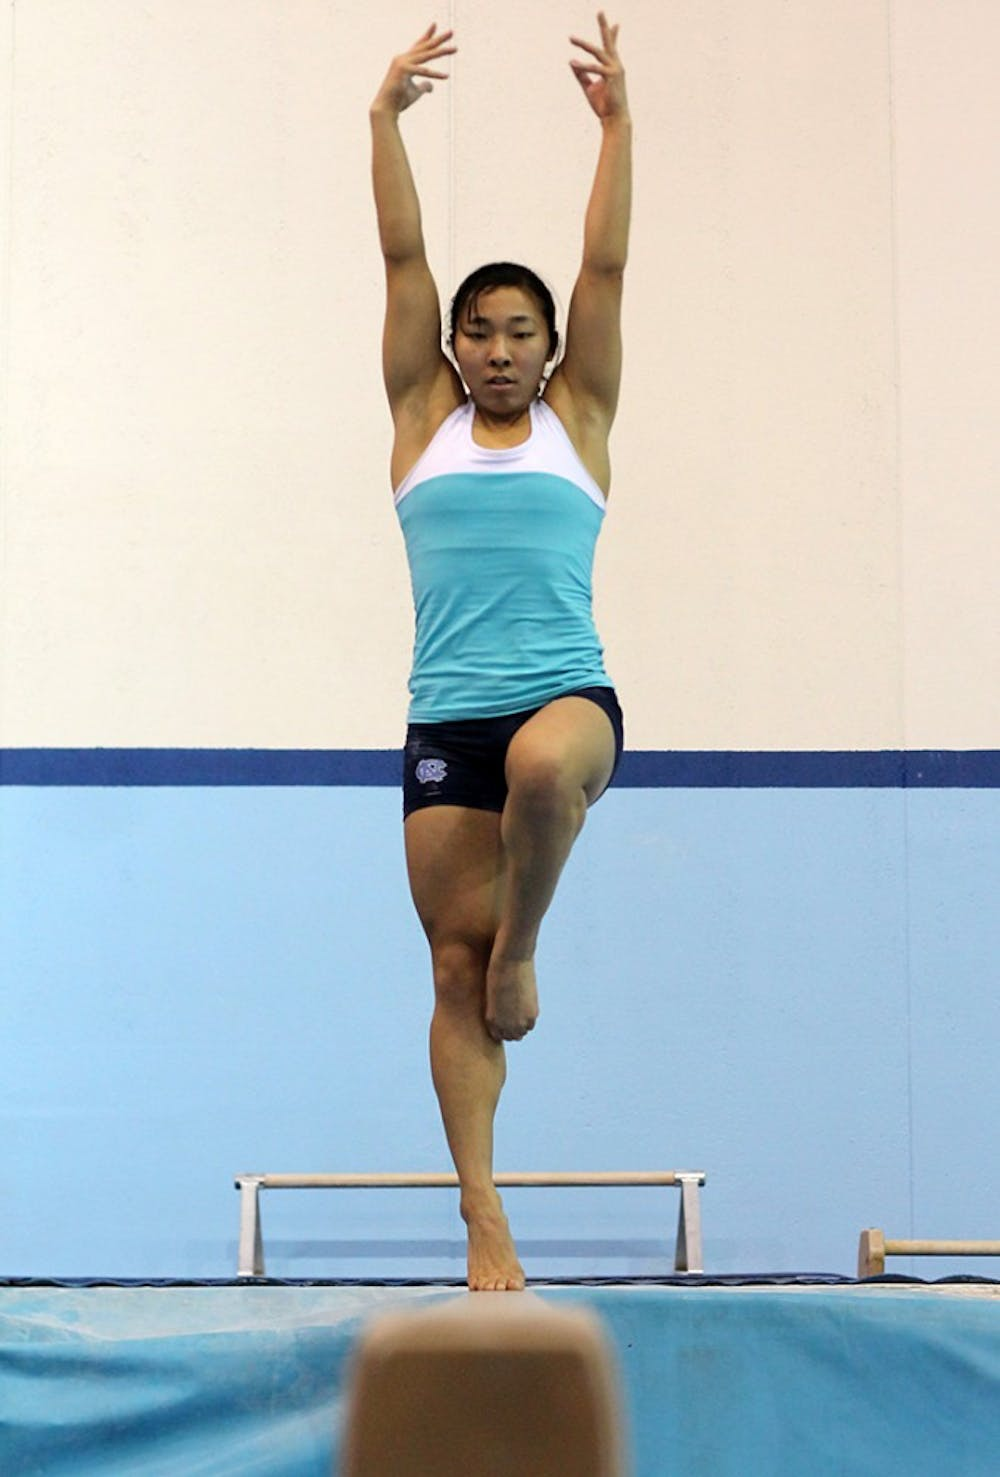 UNC gymnast Michelle Ikoma finds her own way